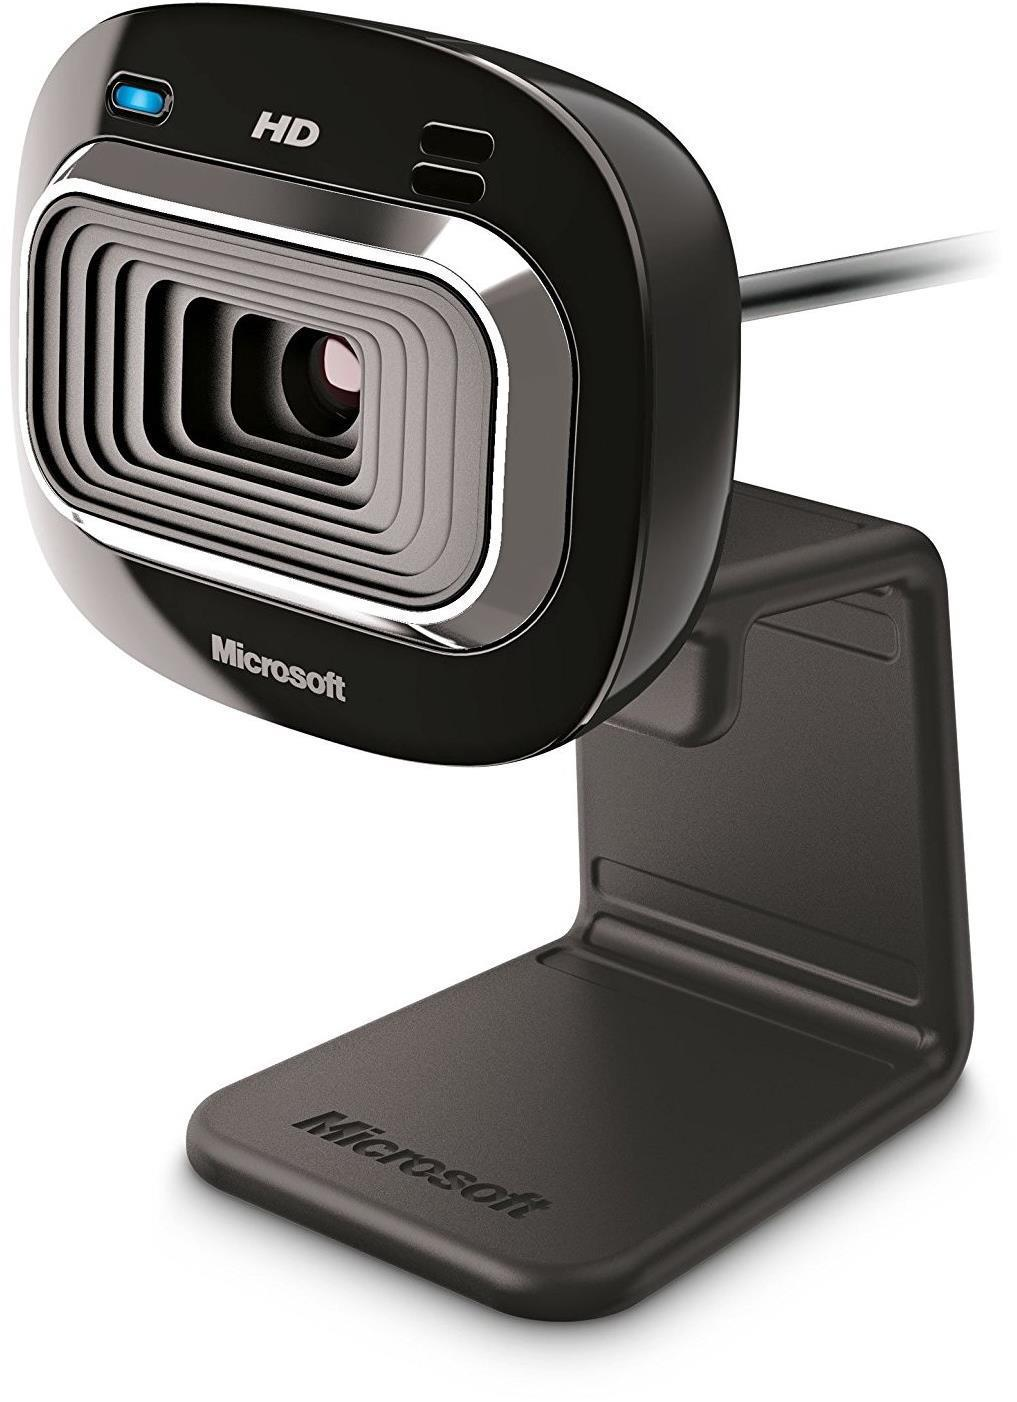 Microsoft LifeCam HD 3000 Webcam 1280x720